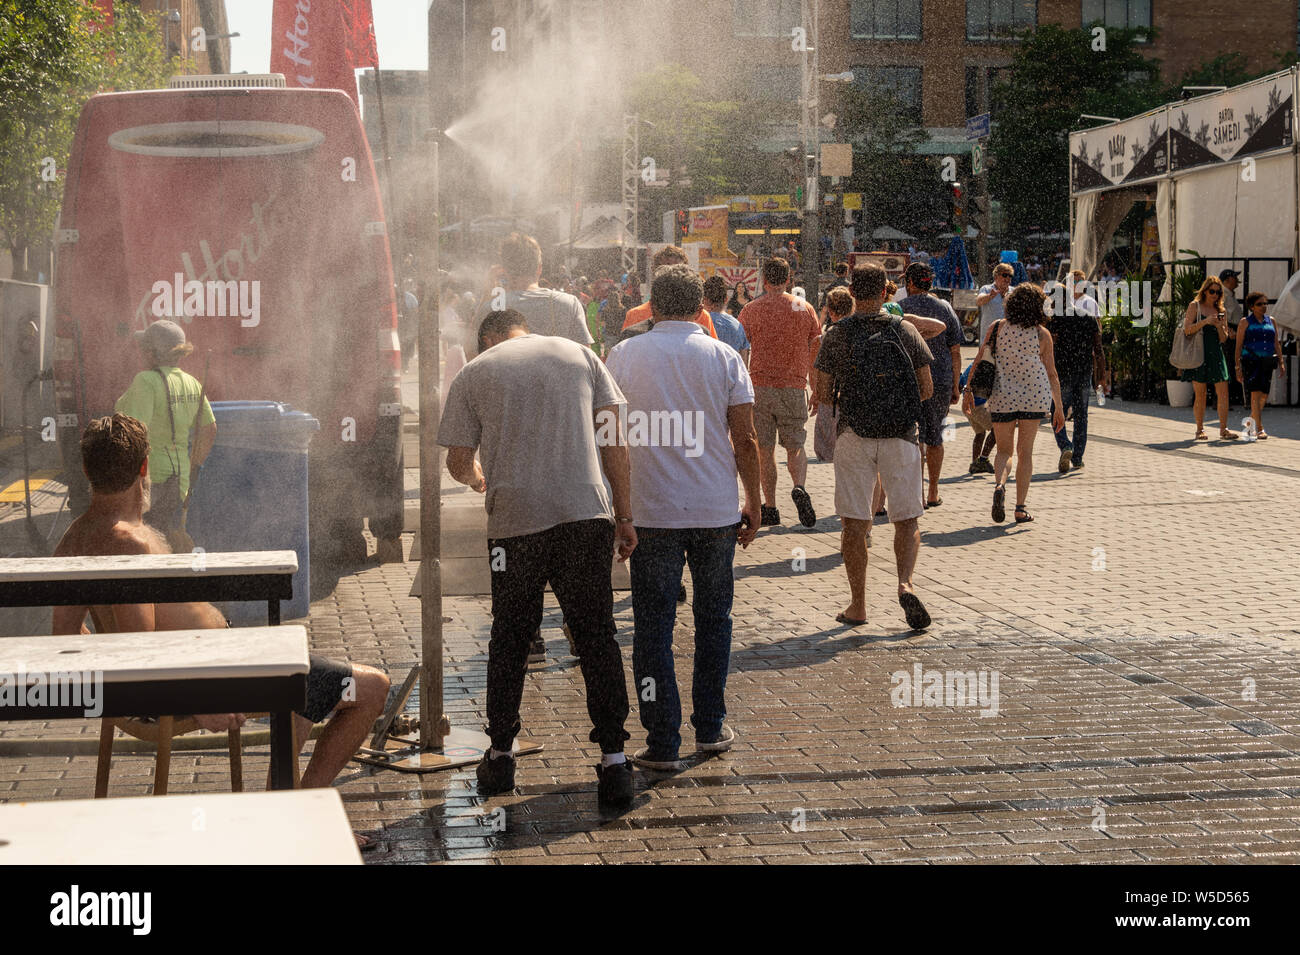 Misting Stock Photos & Misting Stock Images - Alamy